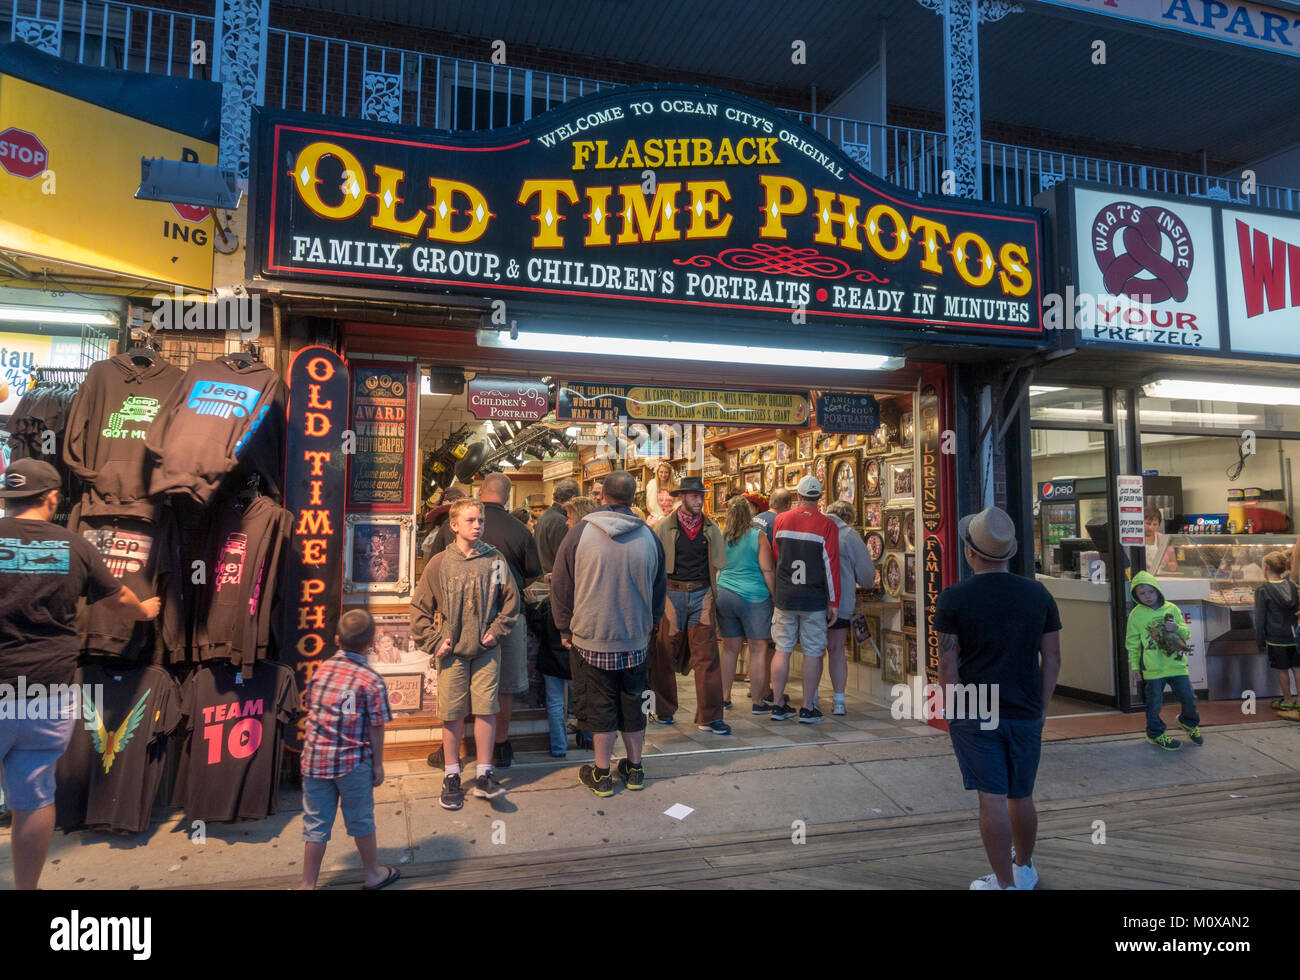 An outlet of Flashback Old Time Photos shop on the Boardwalk in Ocean City, Maryland, United States. - Stock Image